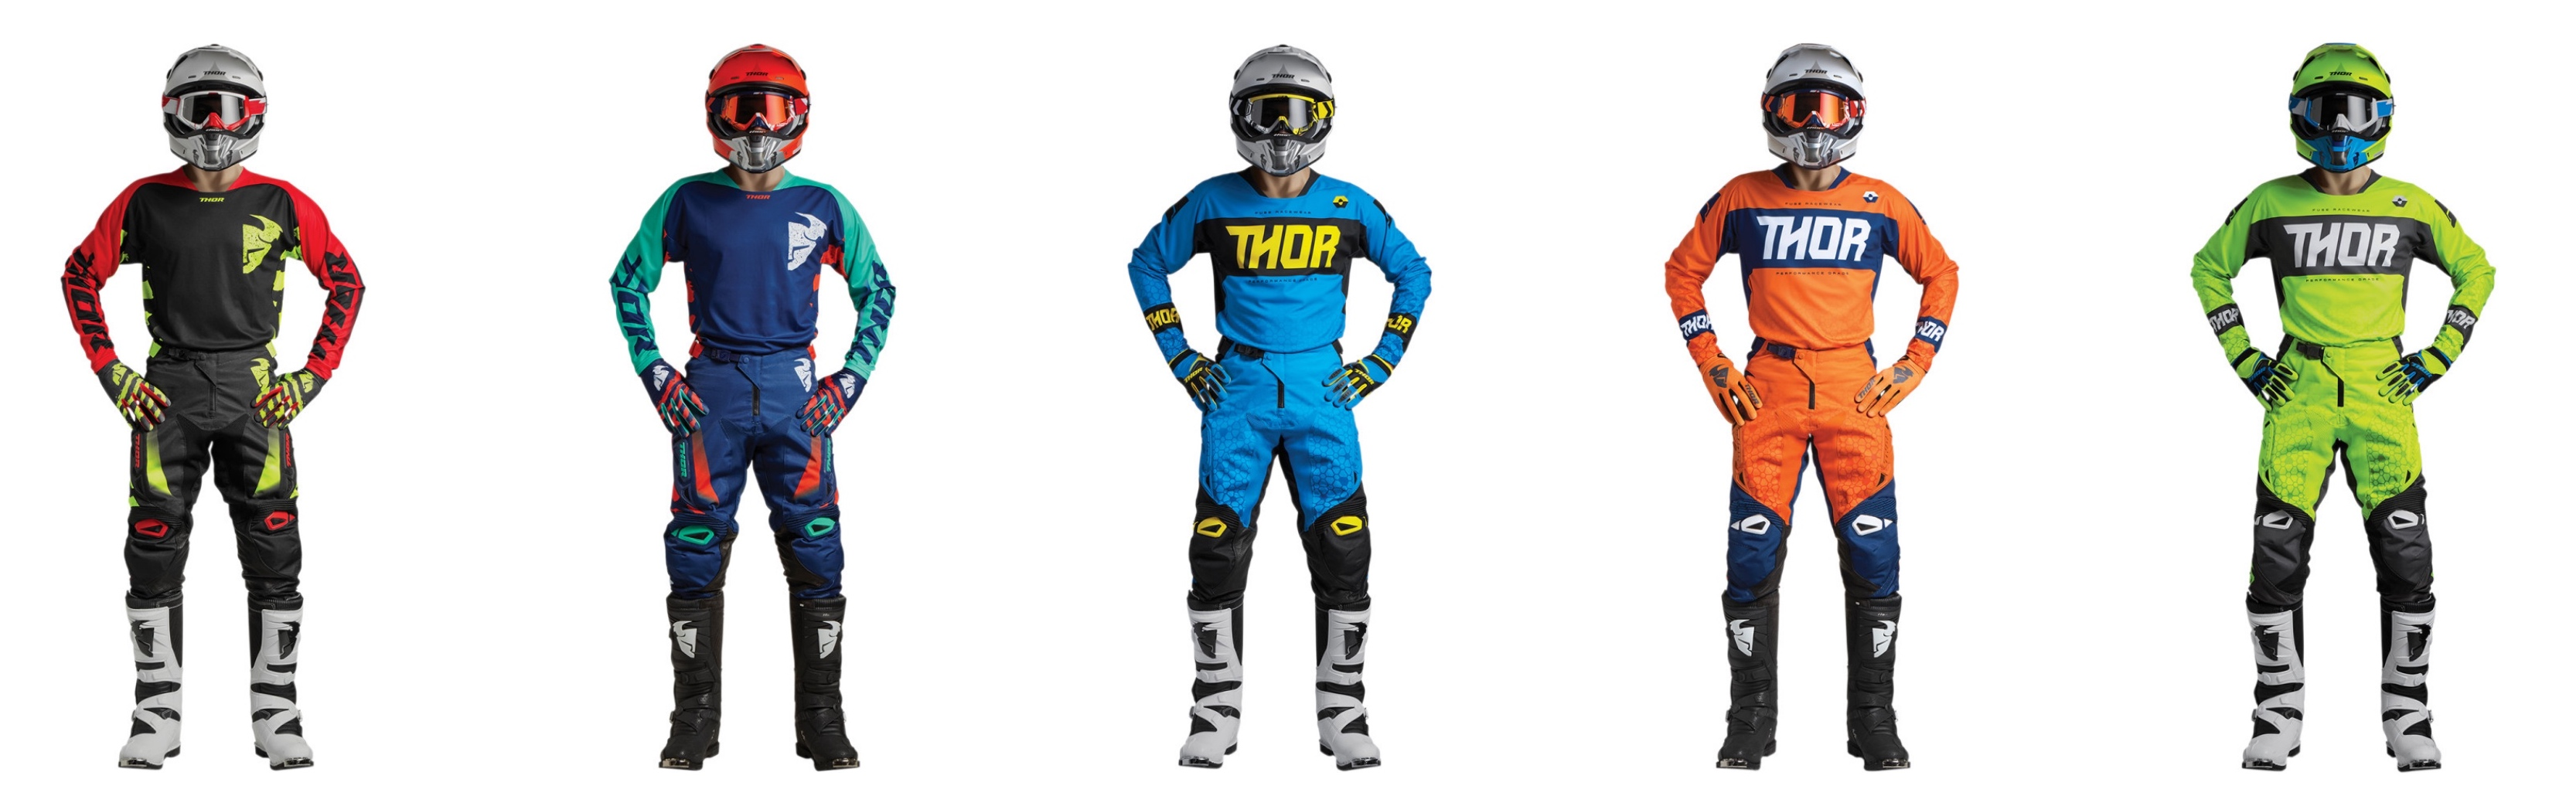 Colour option of the 2018 Thor MX Fuse motocross kit